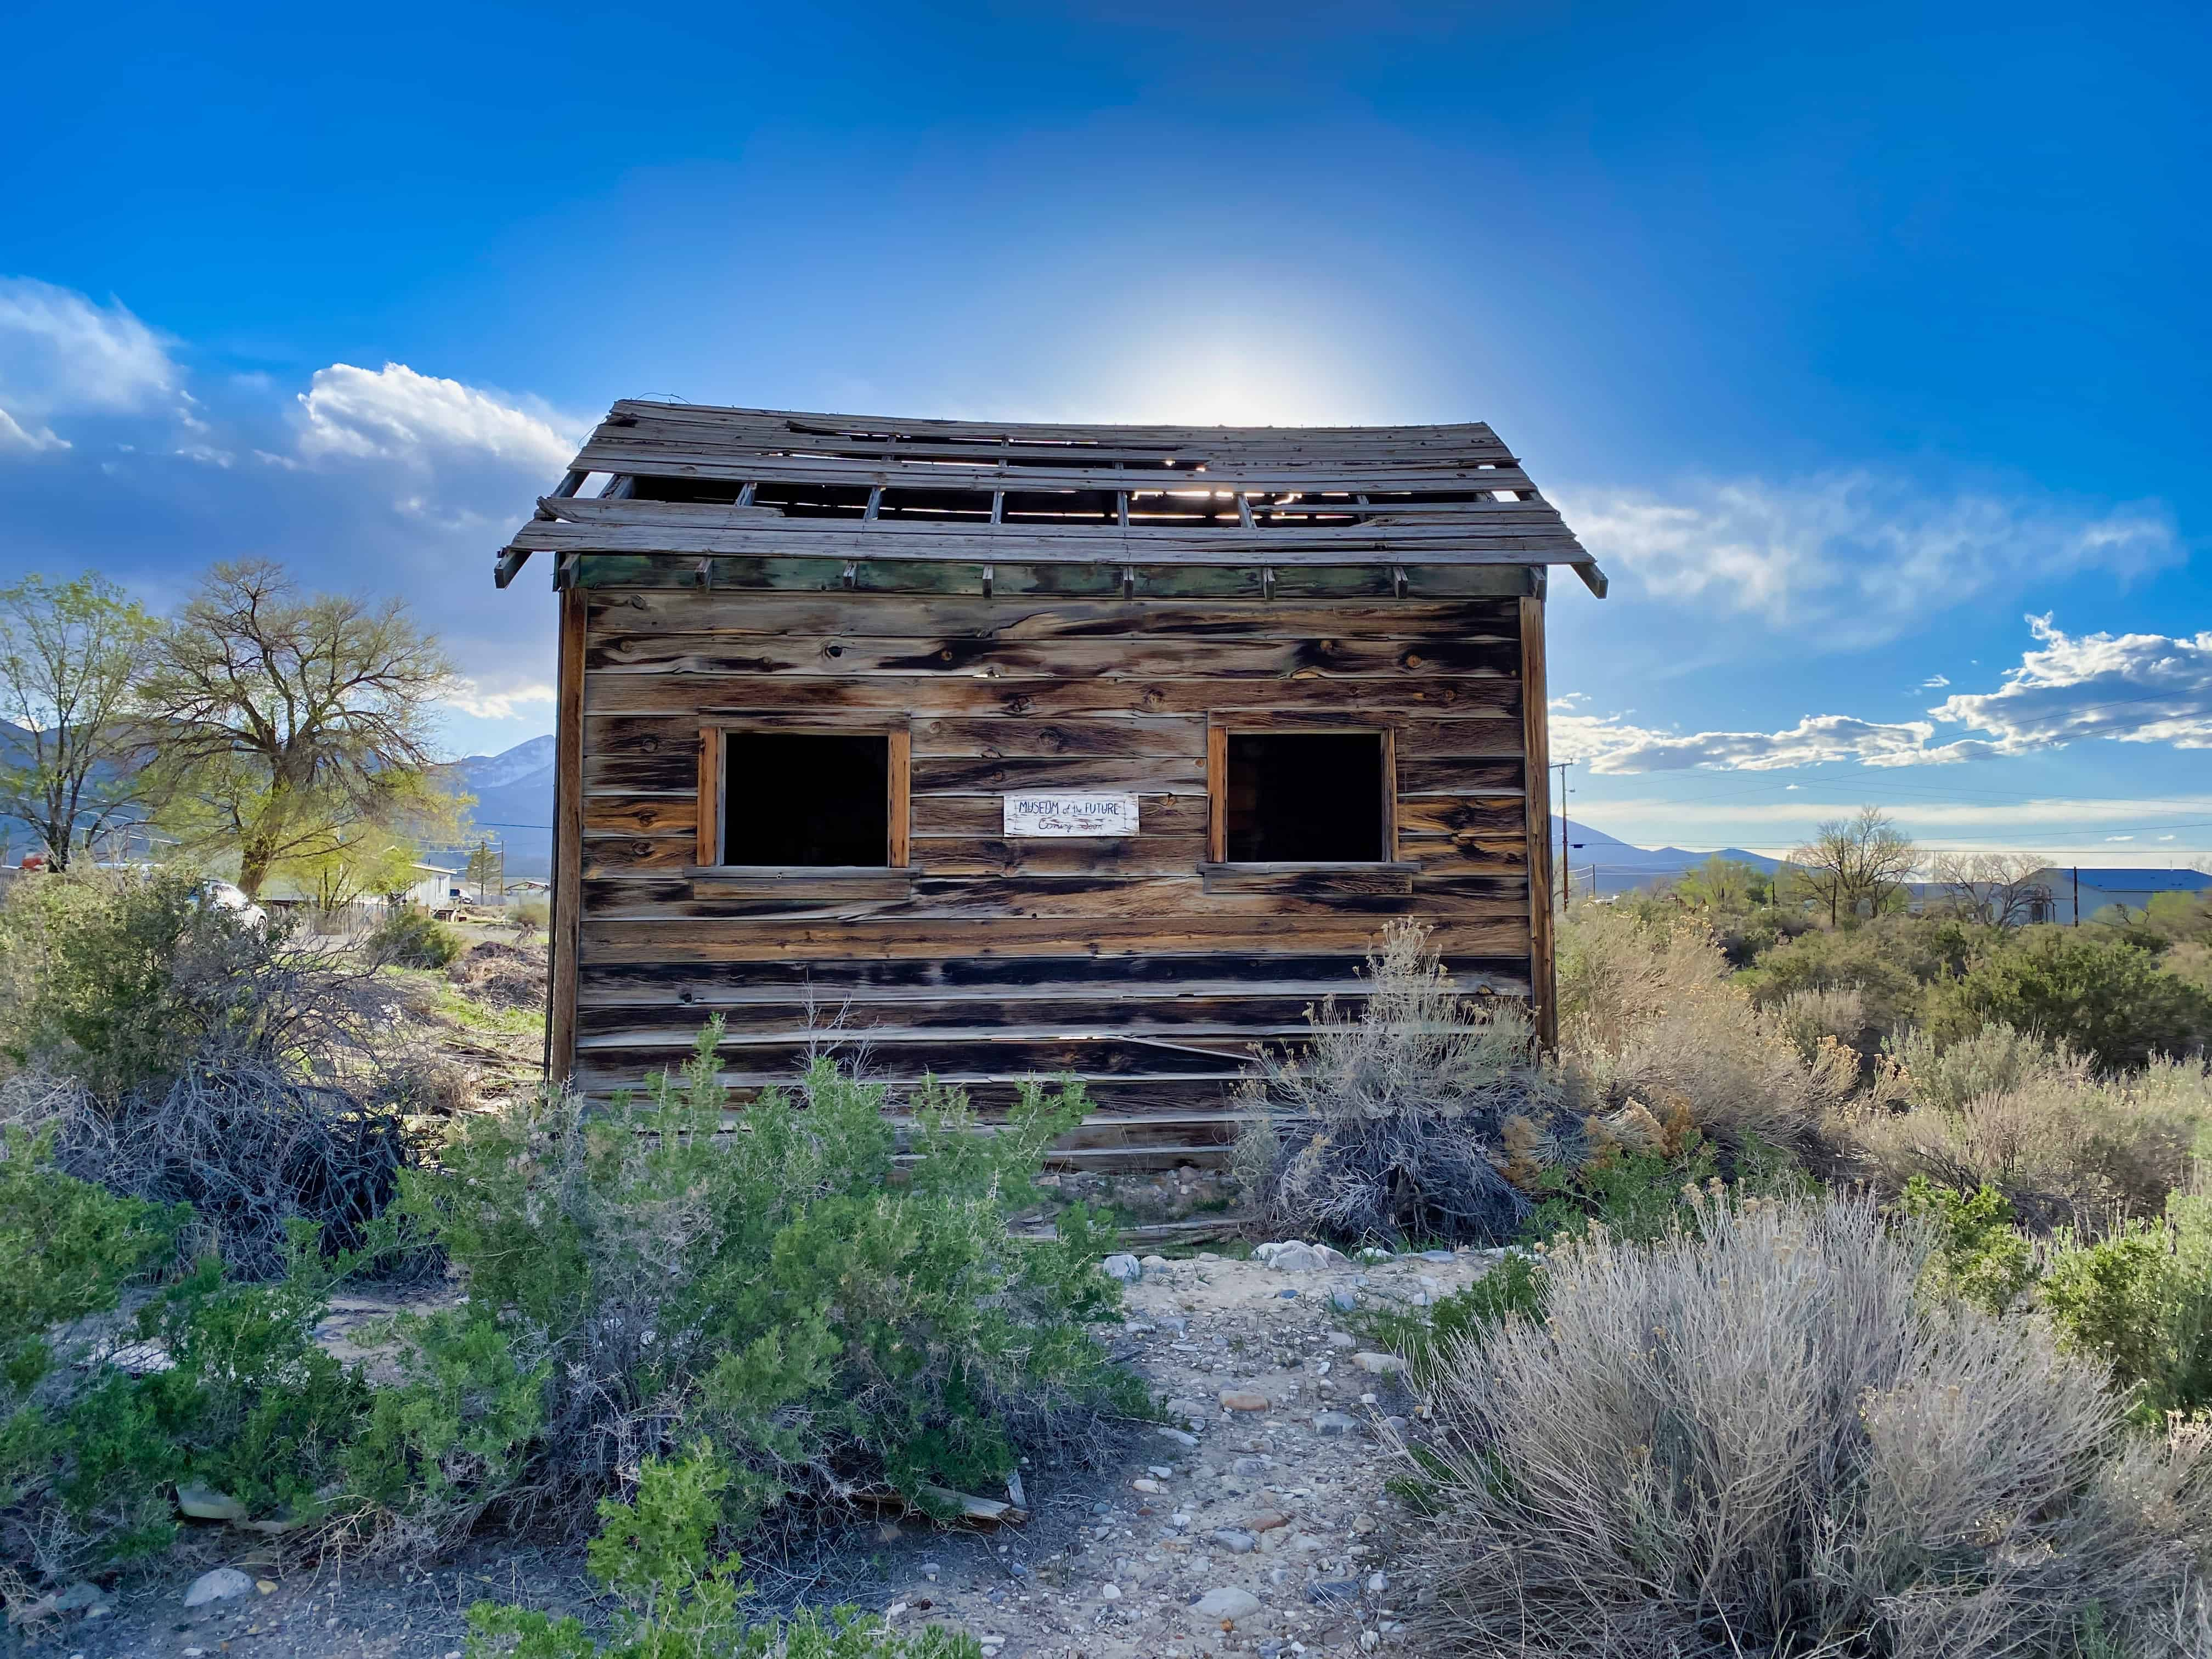 One Day in Great Basin - Old Barn